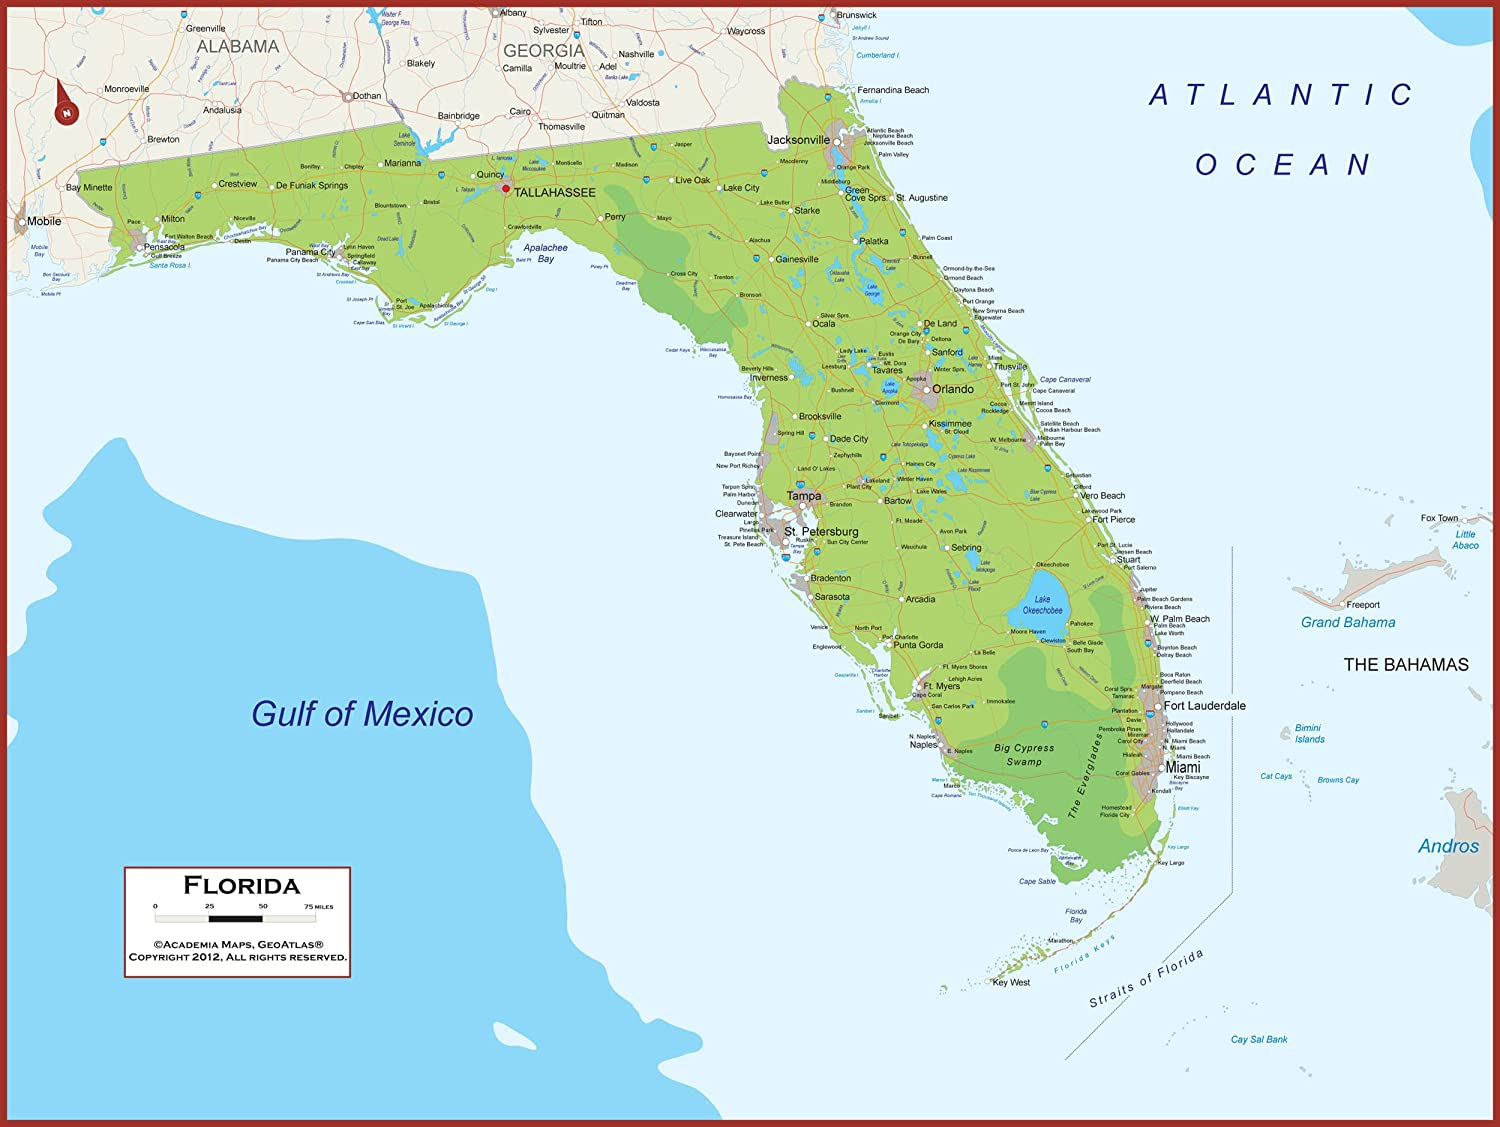 Florida Images Map.60 X 45 Giant Florida State Wall Map Poster With Counties Classroom Style Map With Durable Lamination Safe For Use With Wet Dry Erase Marker